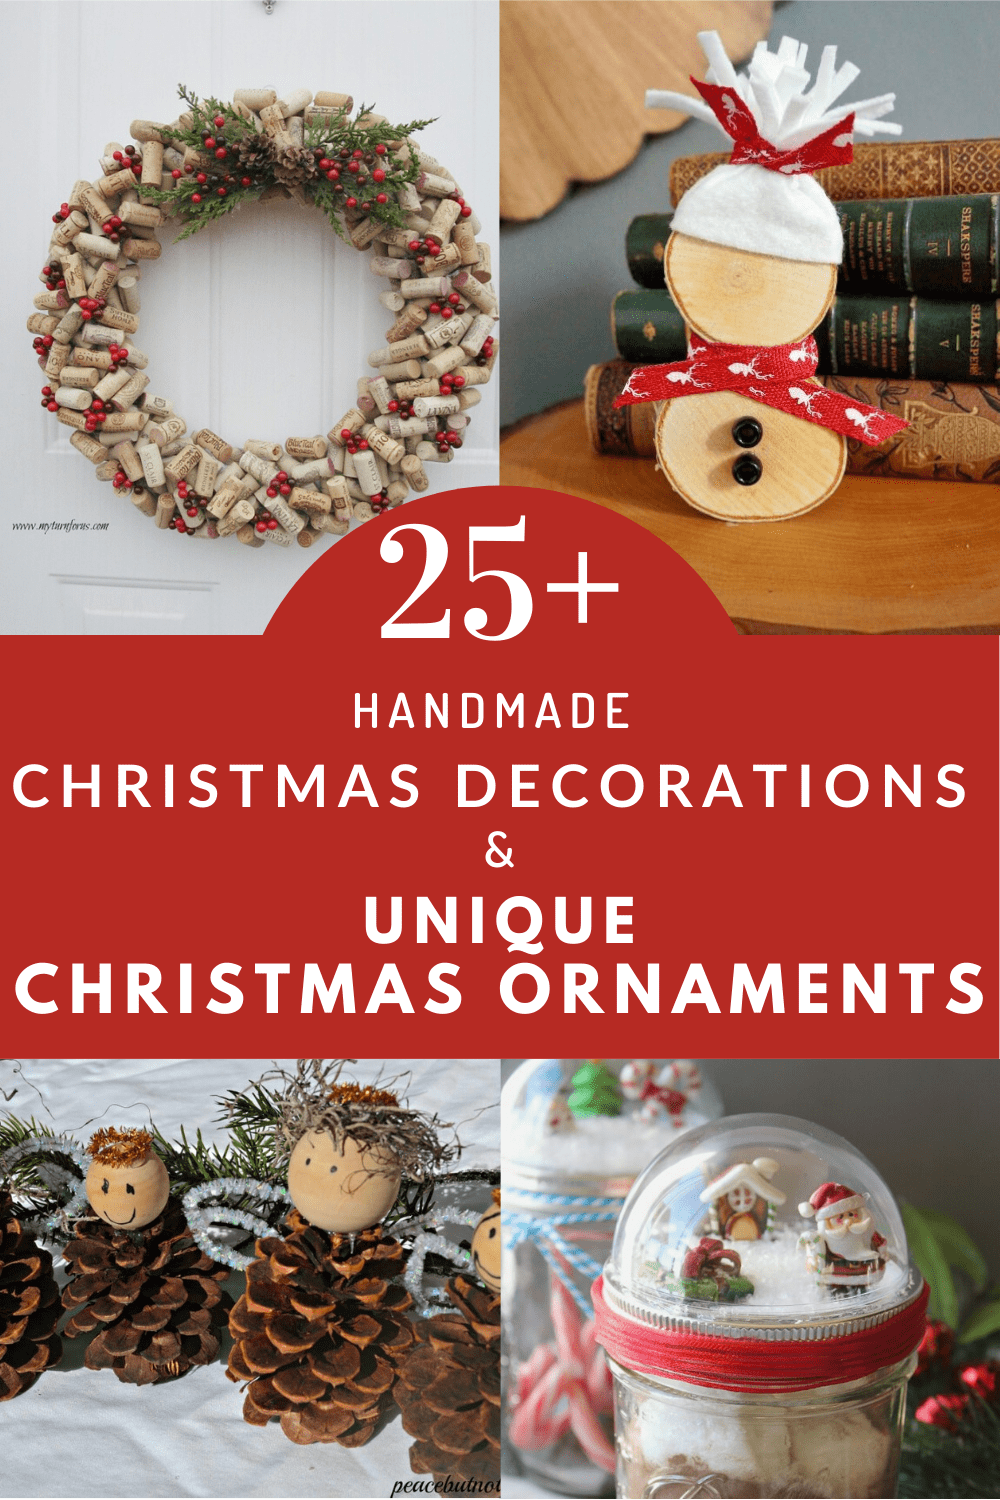 Handmade Christmas Decorations, Unique Christmas decorations, unique Christmas Ornaments